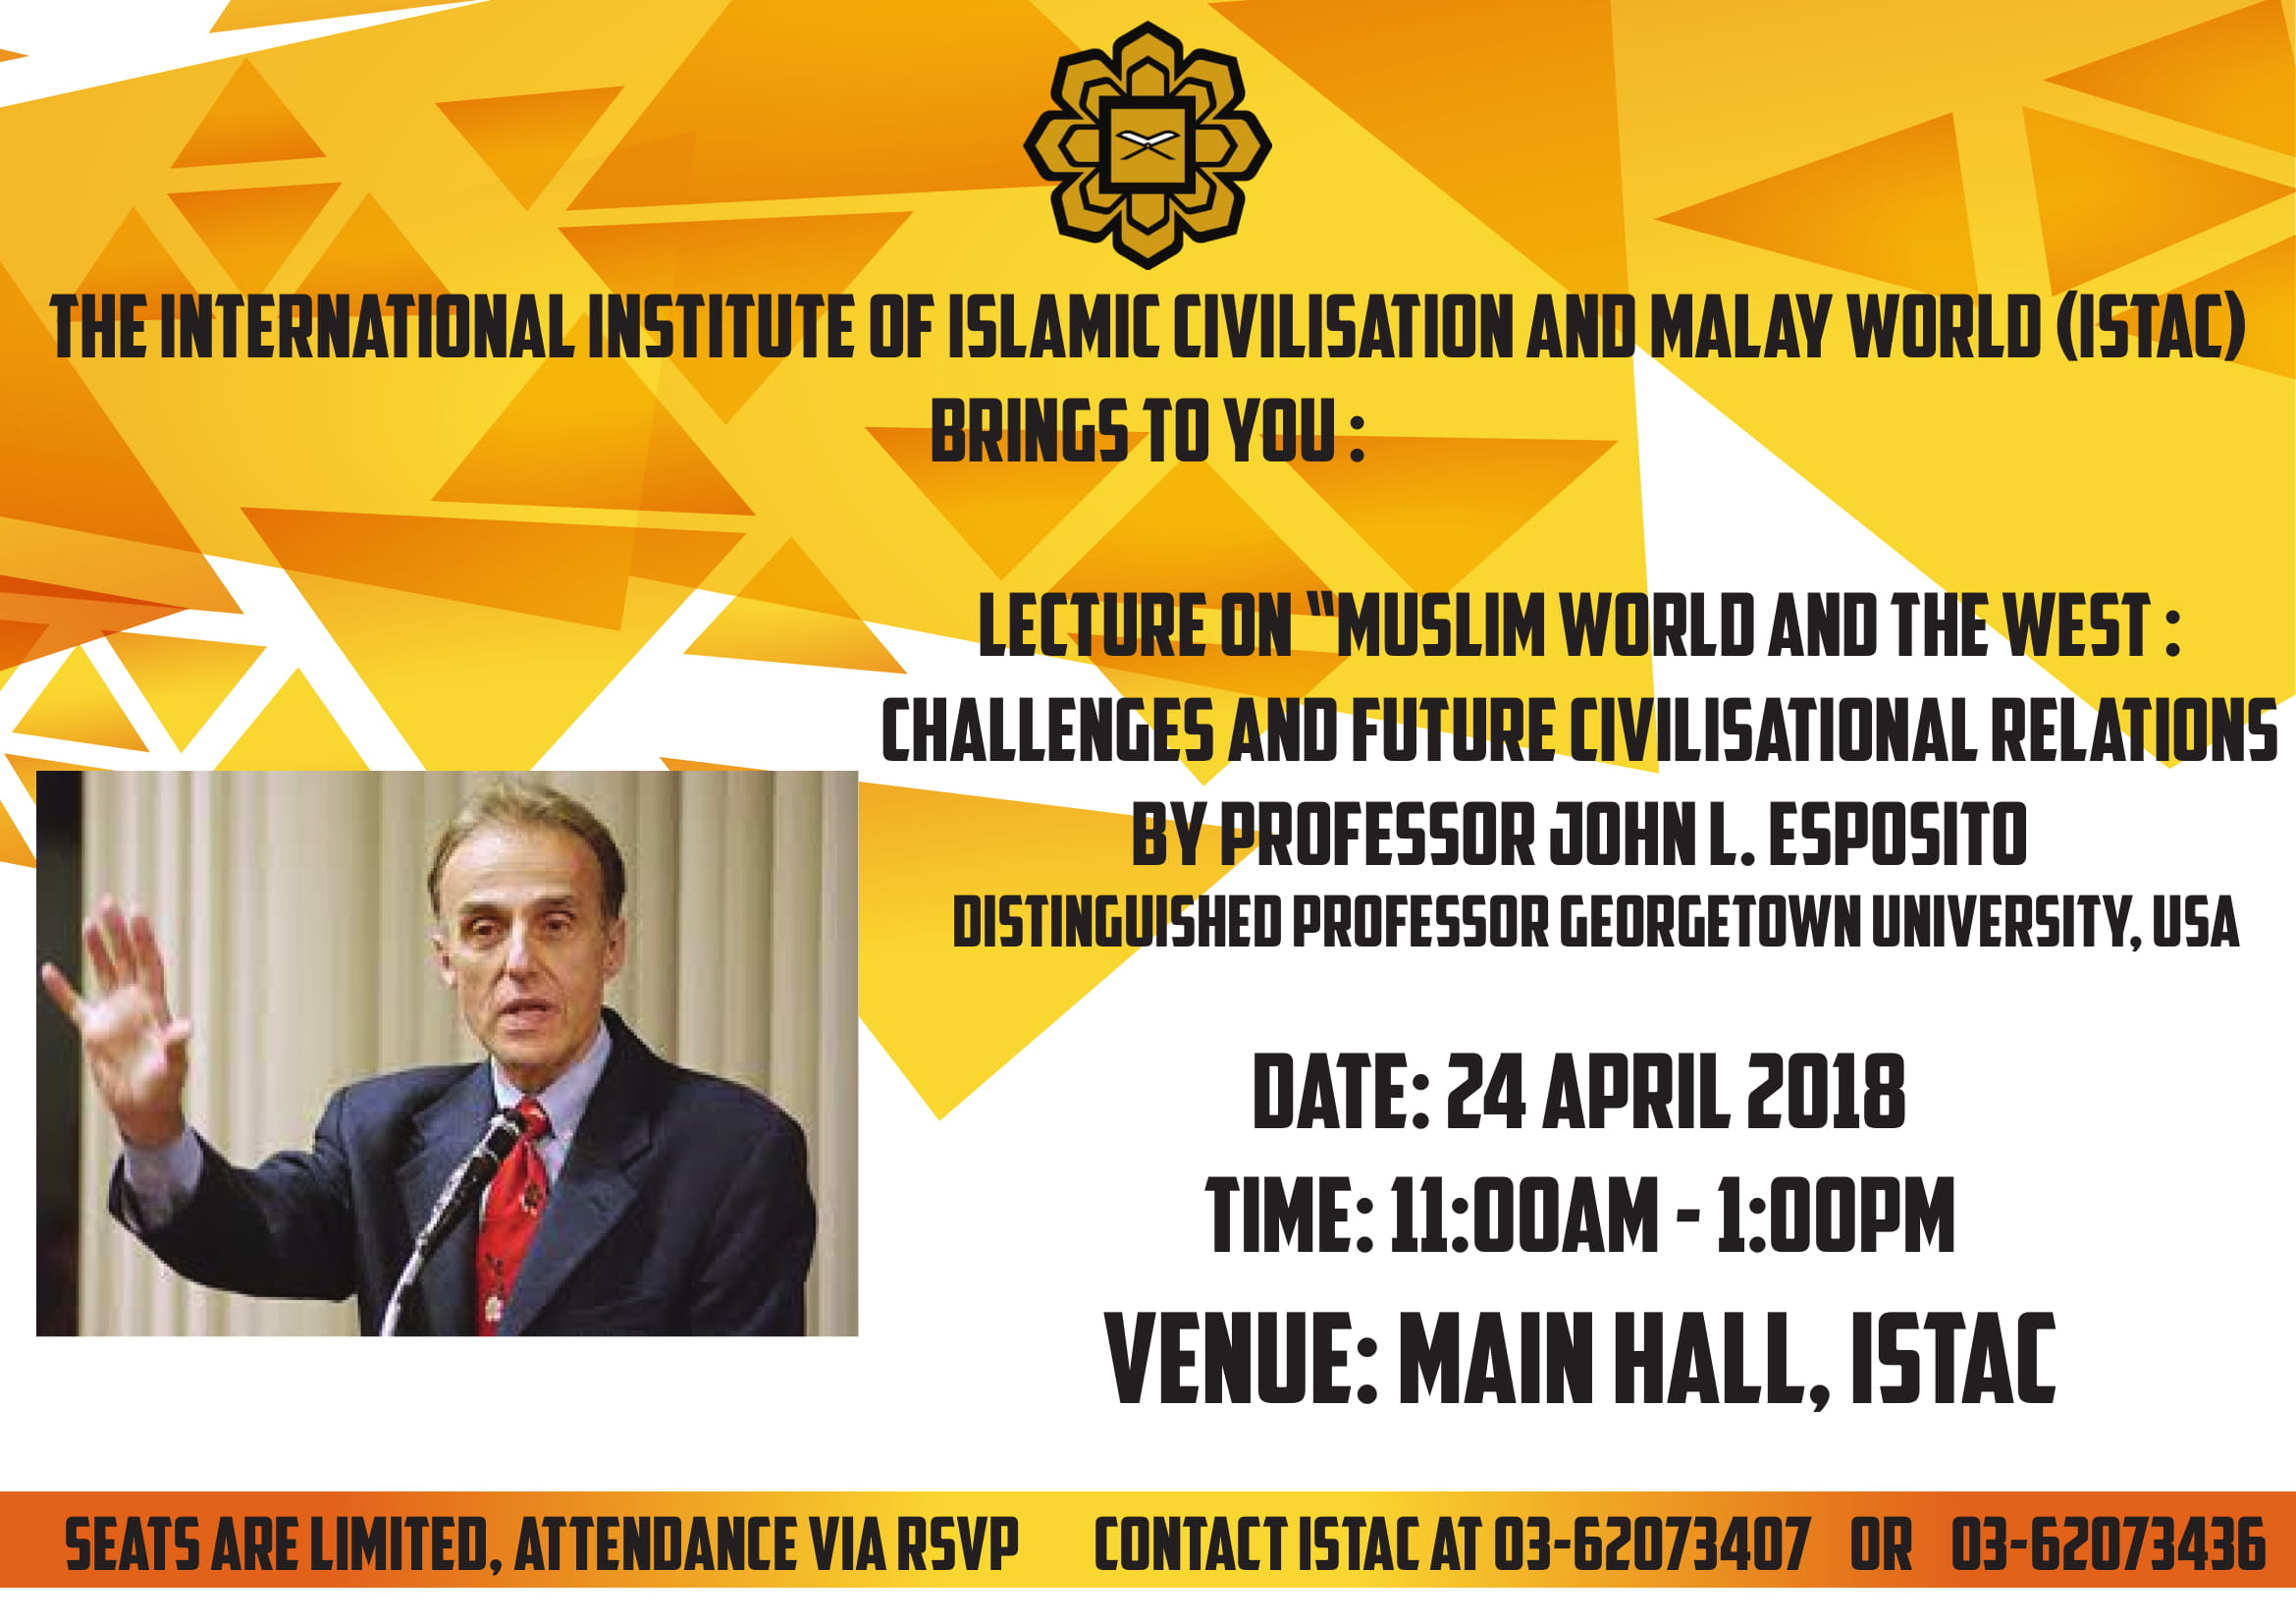 "Lecture On "" Muslim World And The West: Challenges And Future Civilisational Relations By Prof. John L. Esposito"